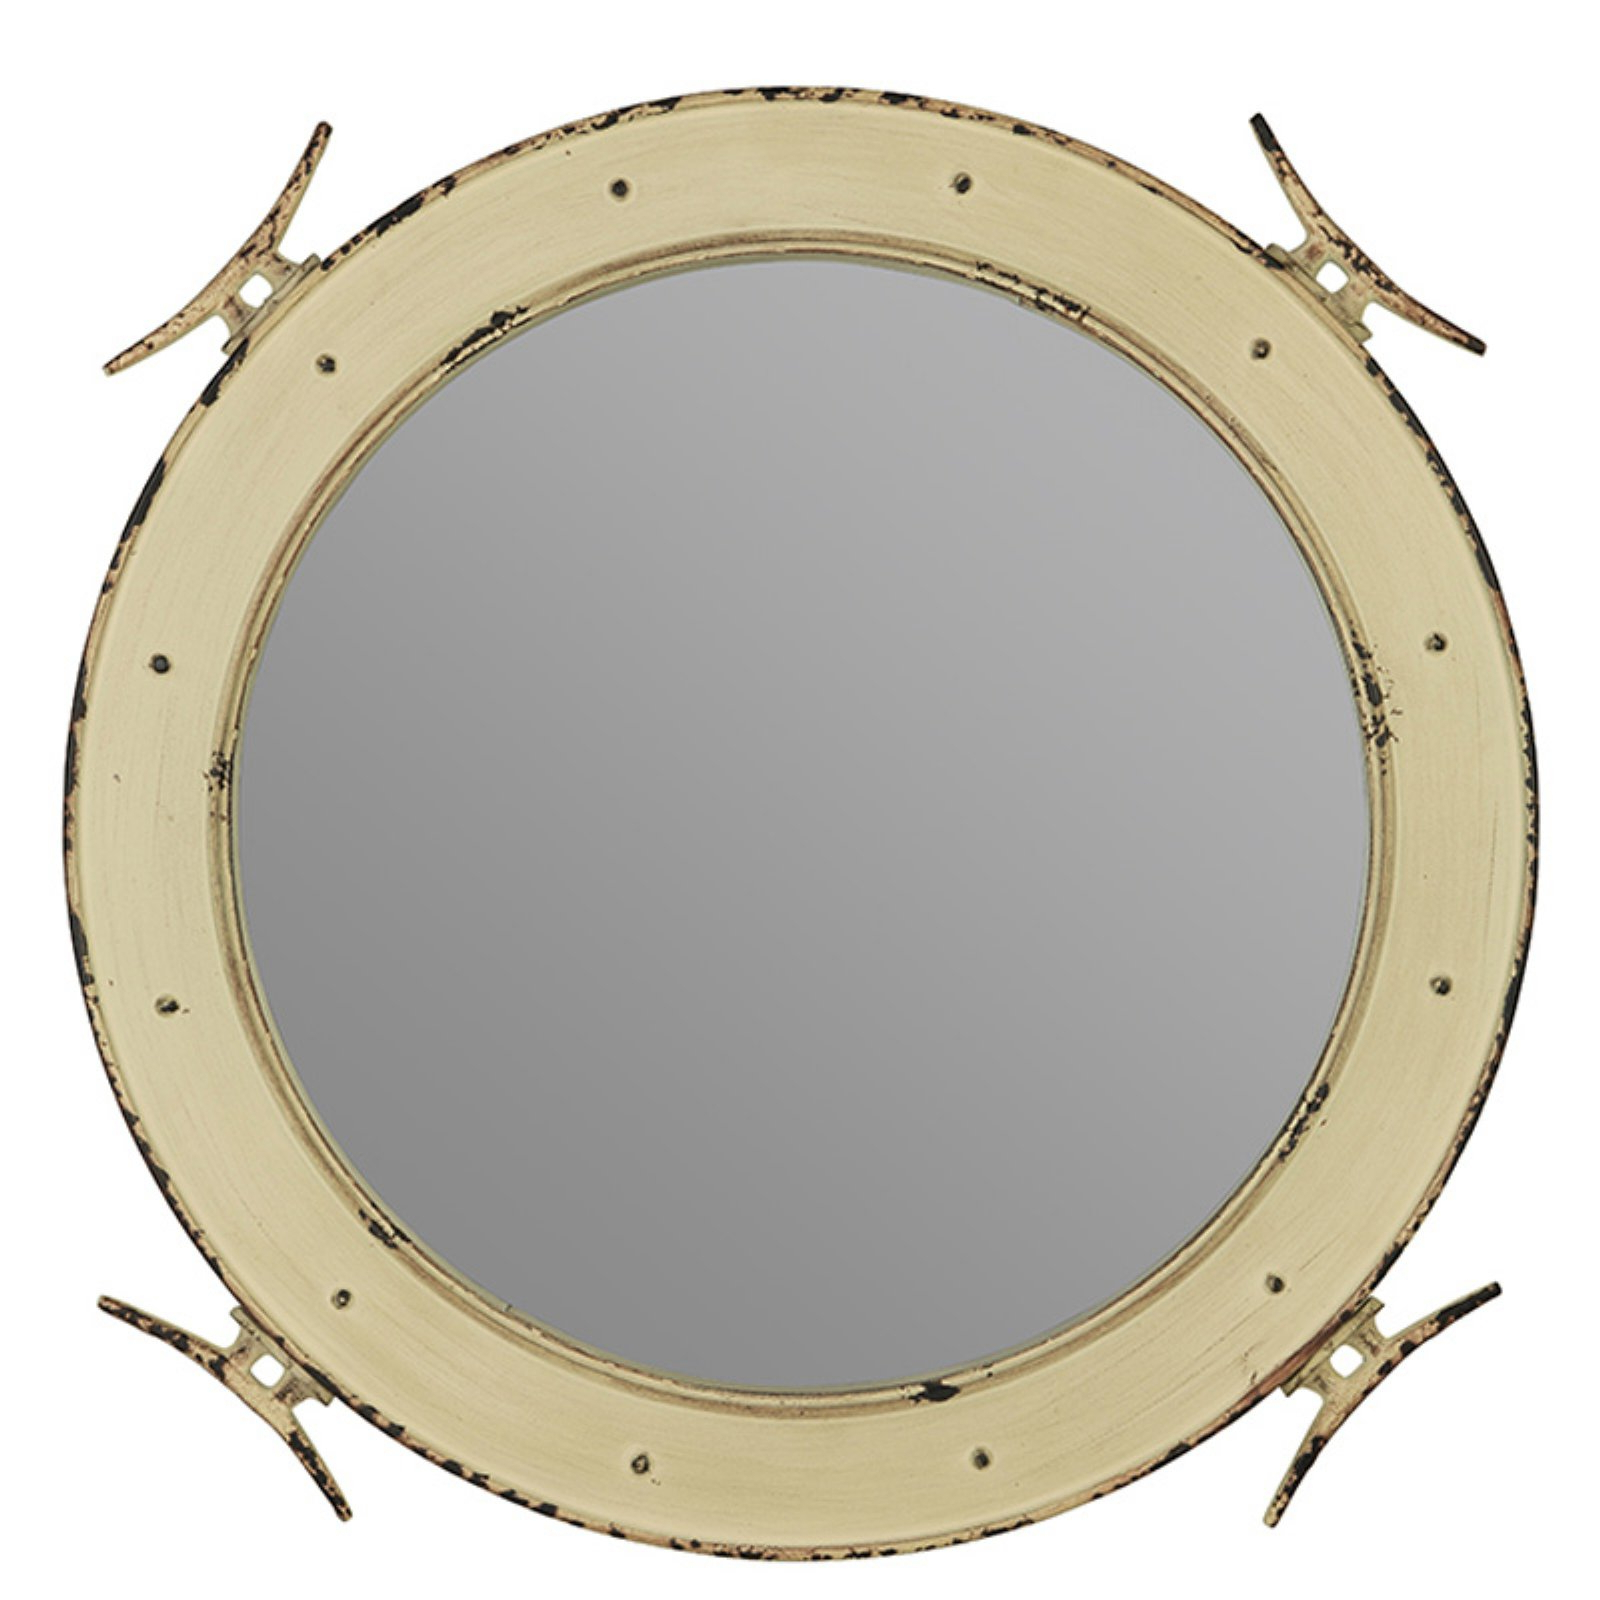 Cooper Classics Nautical Wall Mirror – 27w X 27h In Throughout Latest Nautical Wall Mirrors (View 13 of 20)